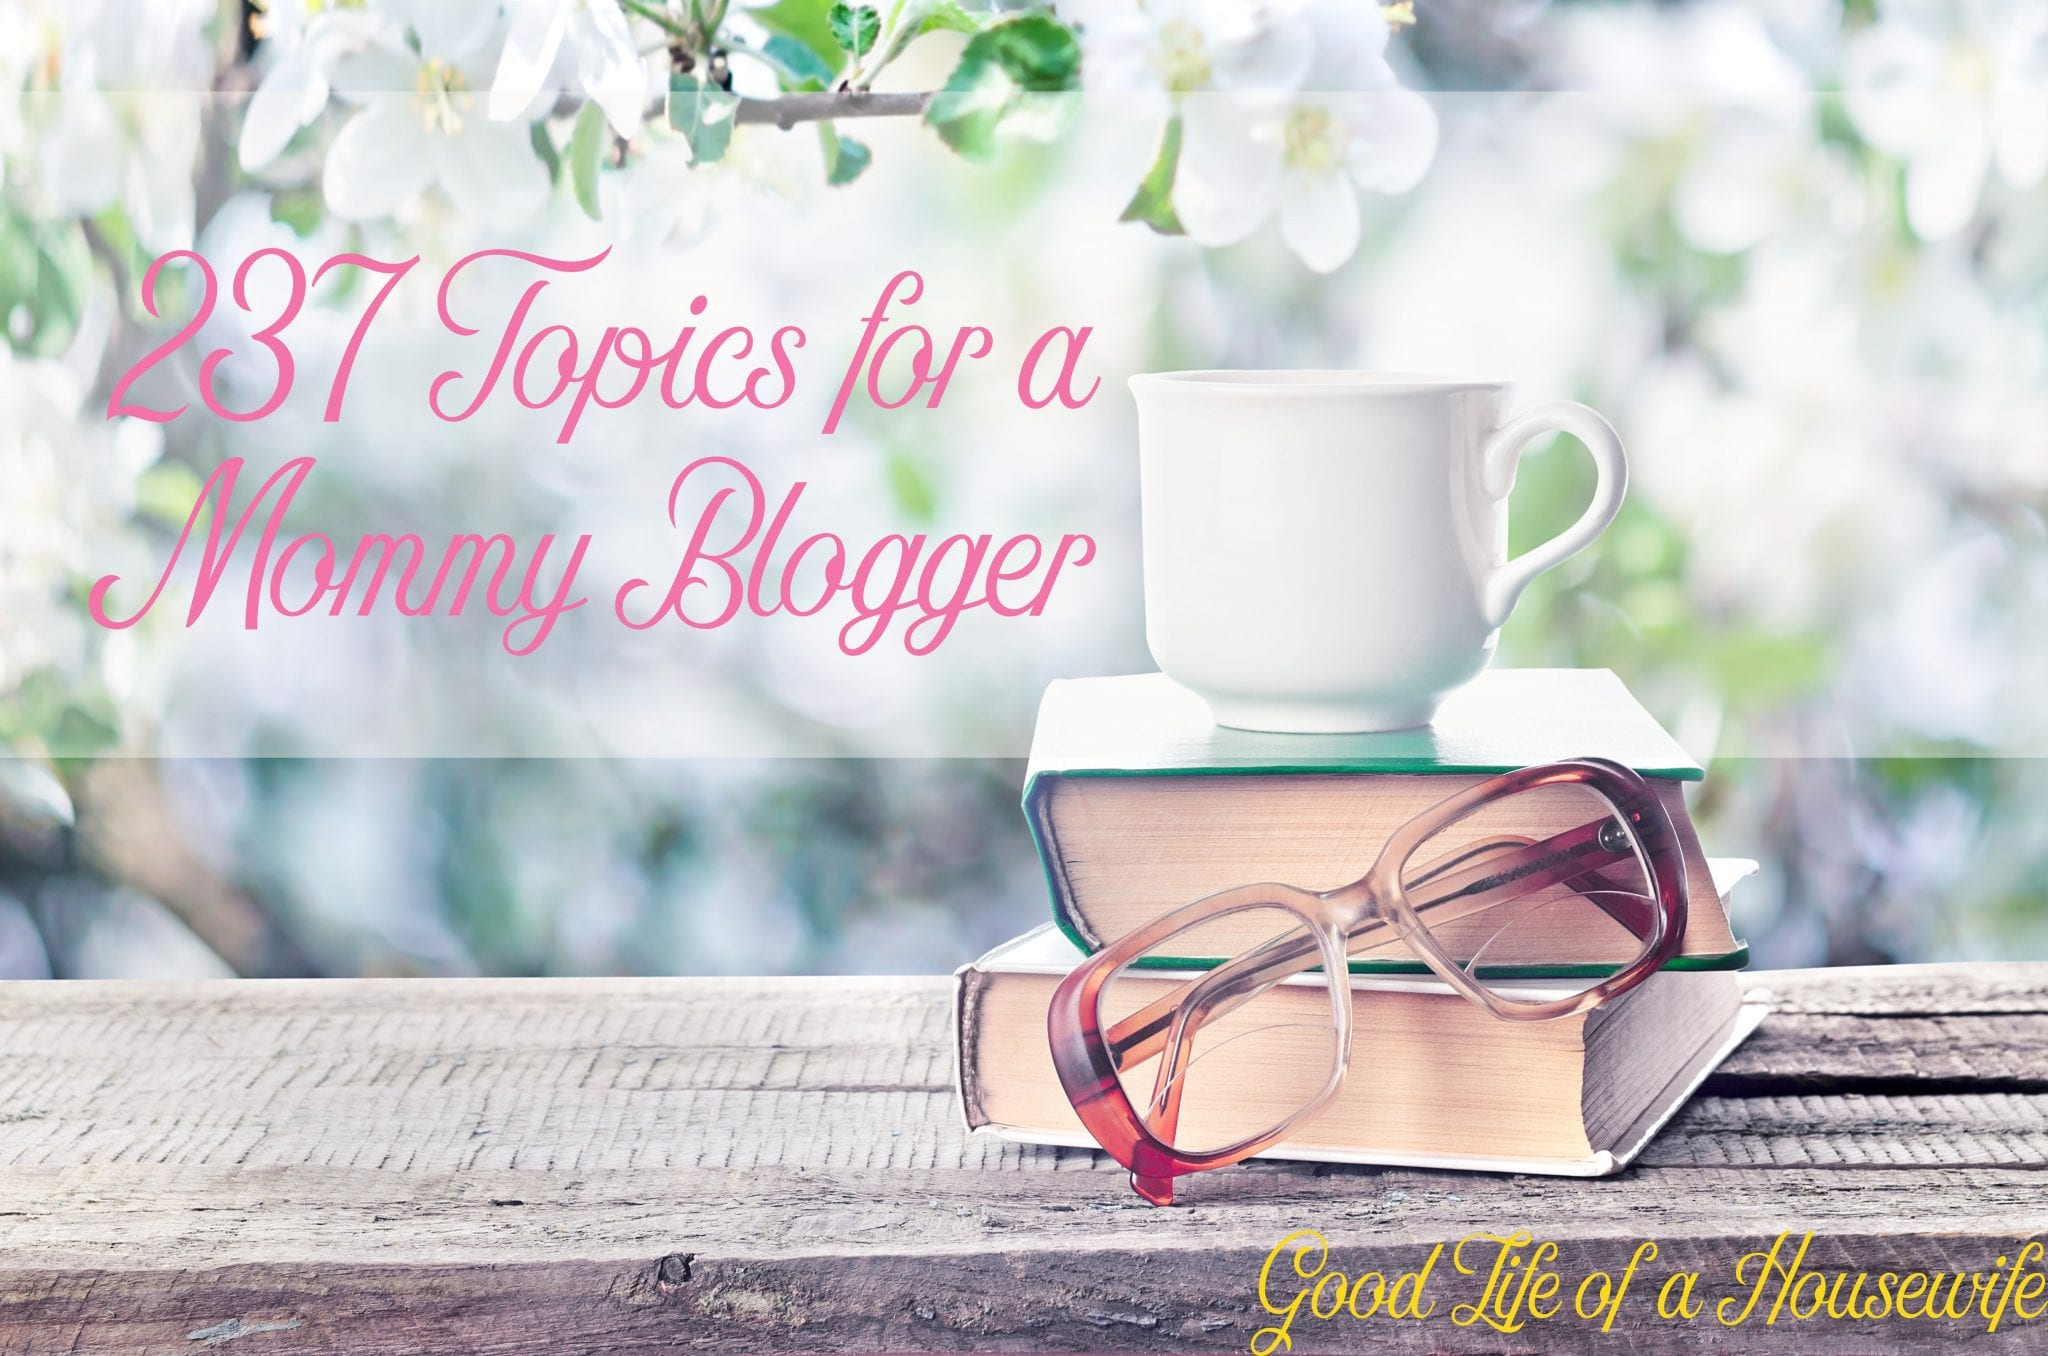 237 Topics for a Mommy Blogger to write about when you have writers block, or need inspiration | Good Life of a Housewife